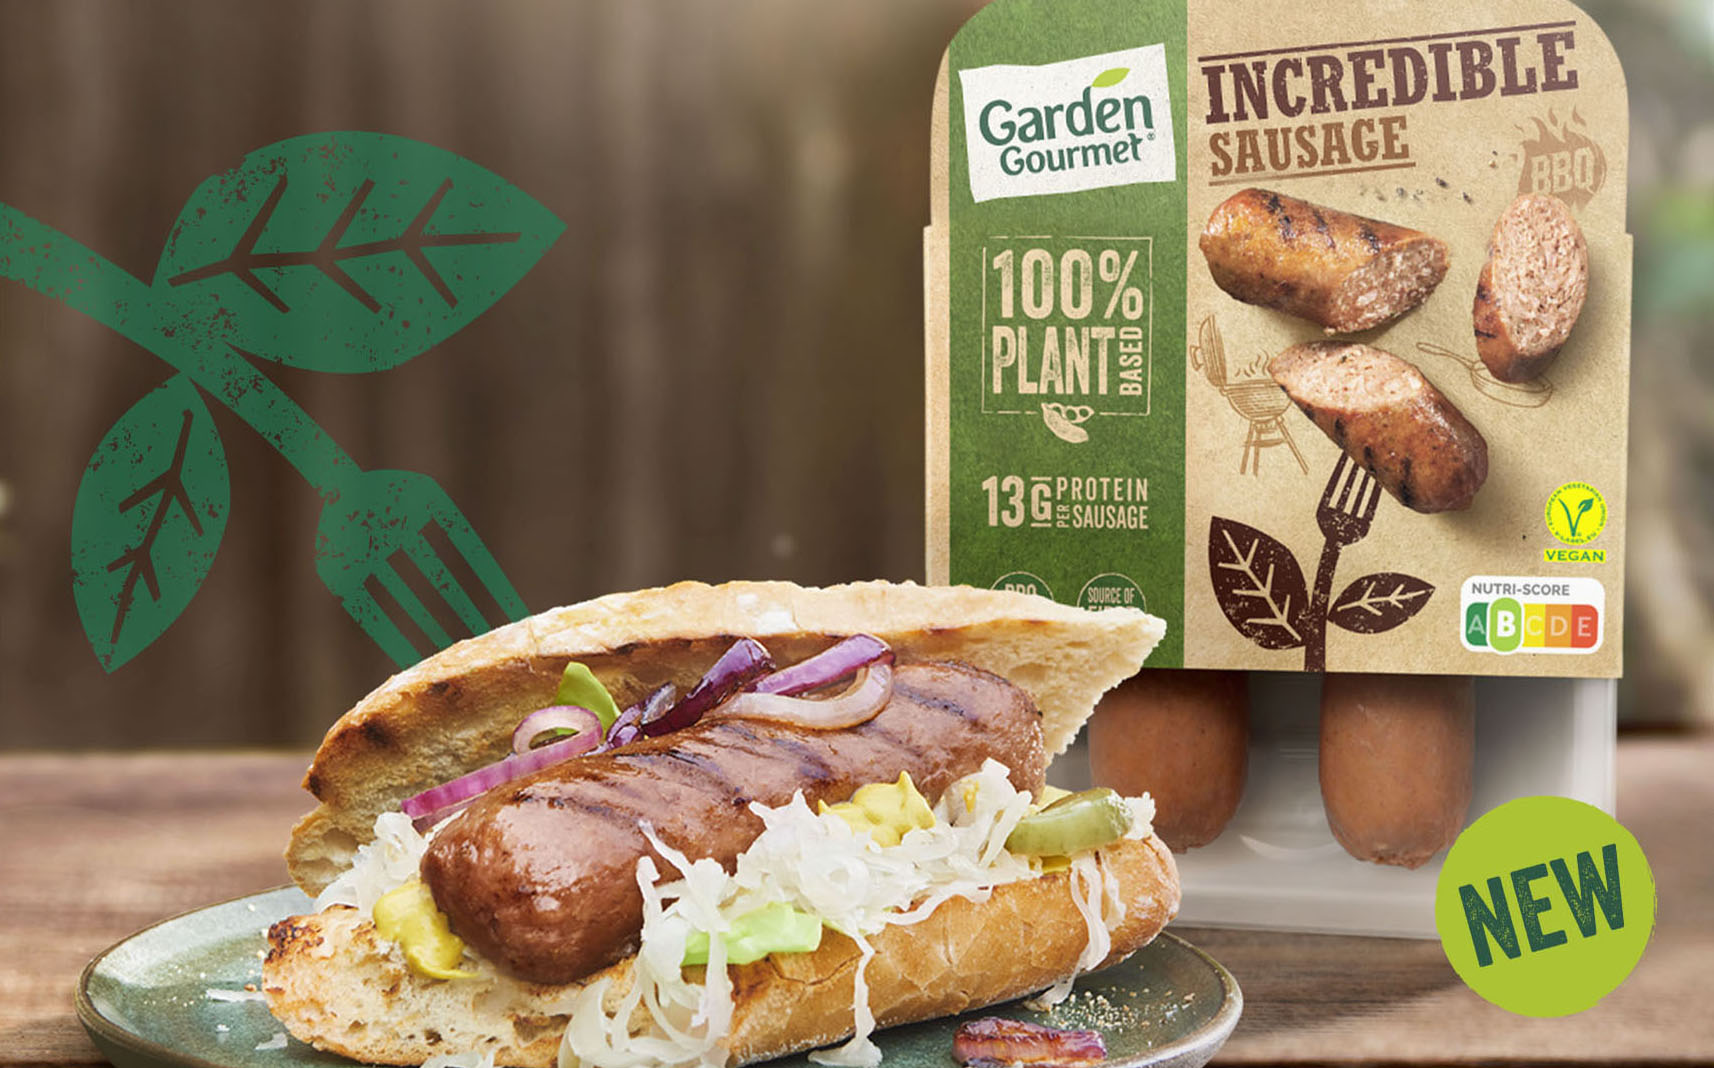 Nestlé brands to launch plant-based sausages in Europe and US